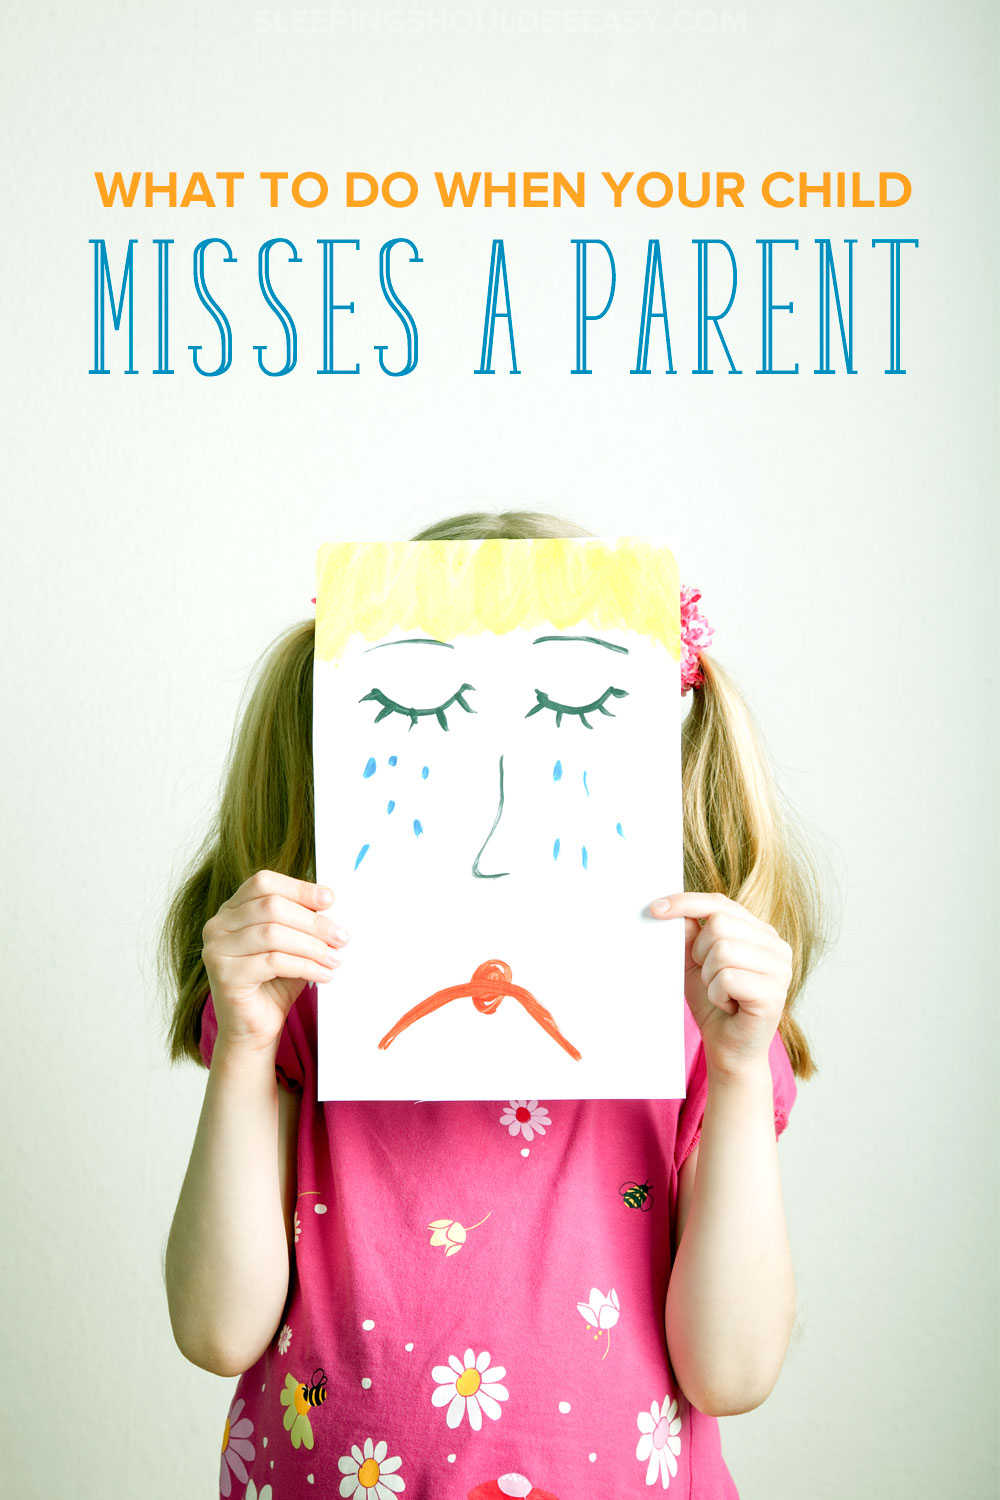 Heading out of town? Working long hours? Your kids will likely miss having you around. Learn how to how to comfort a child who misses a parent during a temporary break. Click here to read what to do when your child misses a parent.